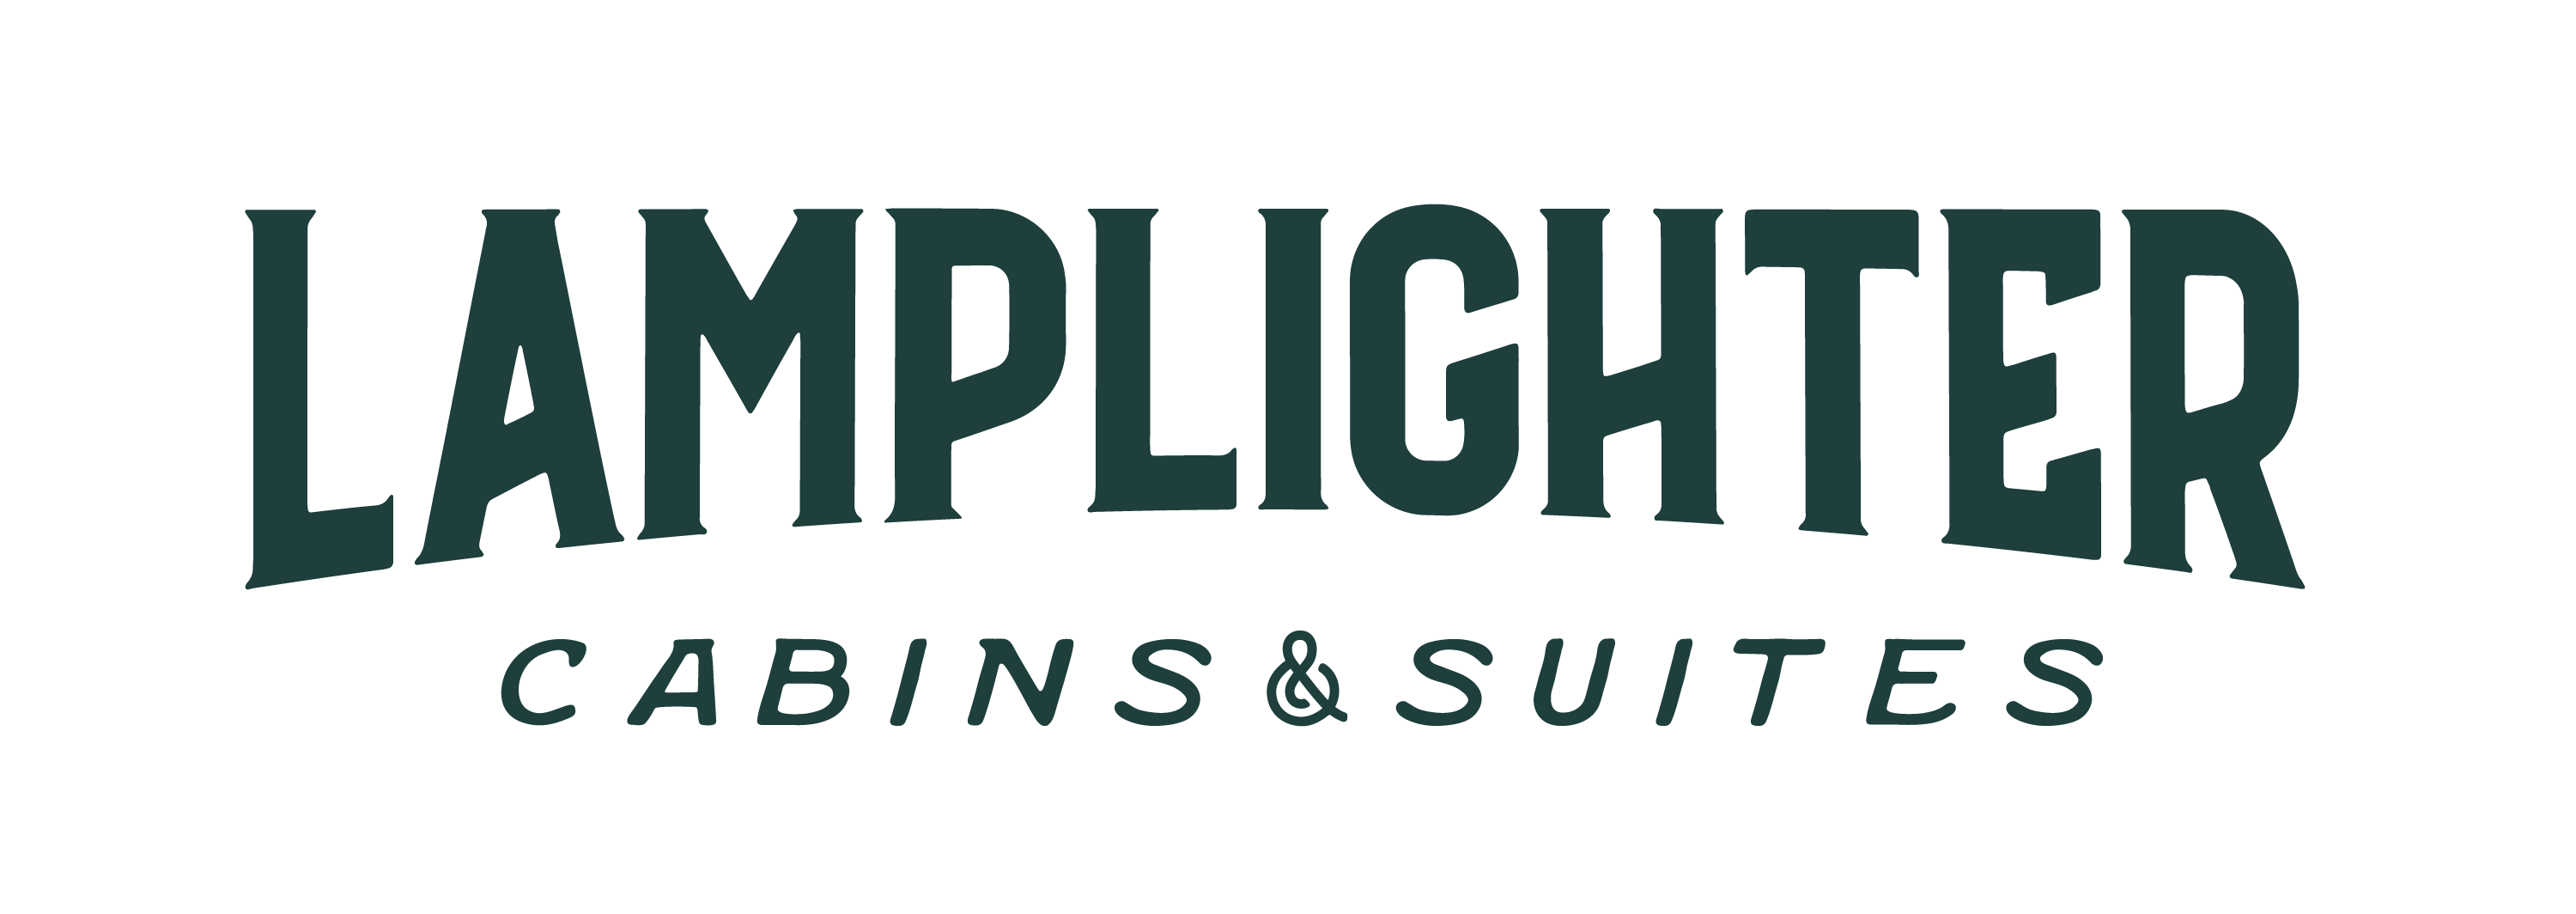 Lamplighter Cabin & Suites